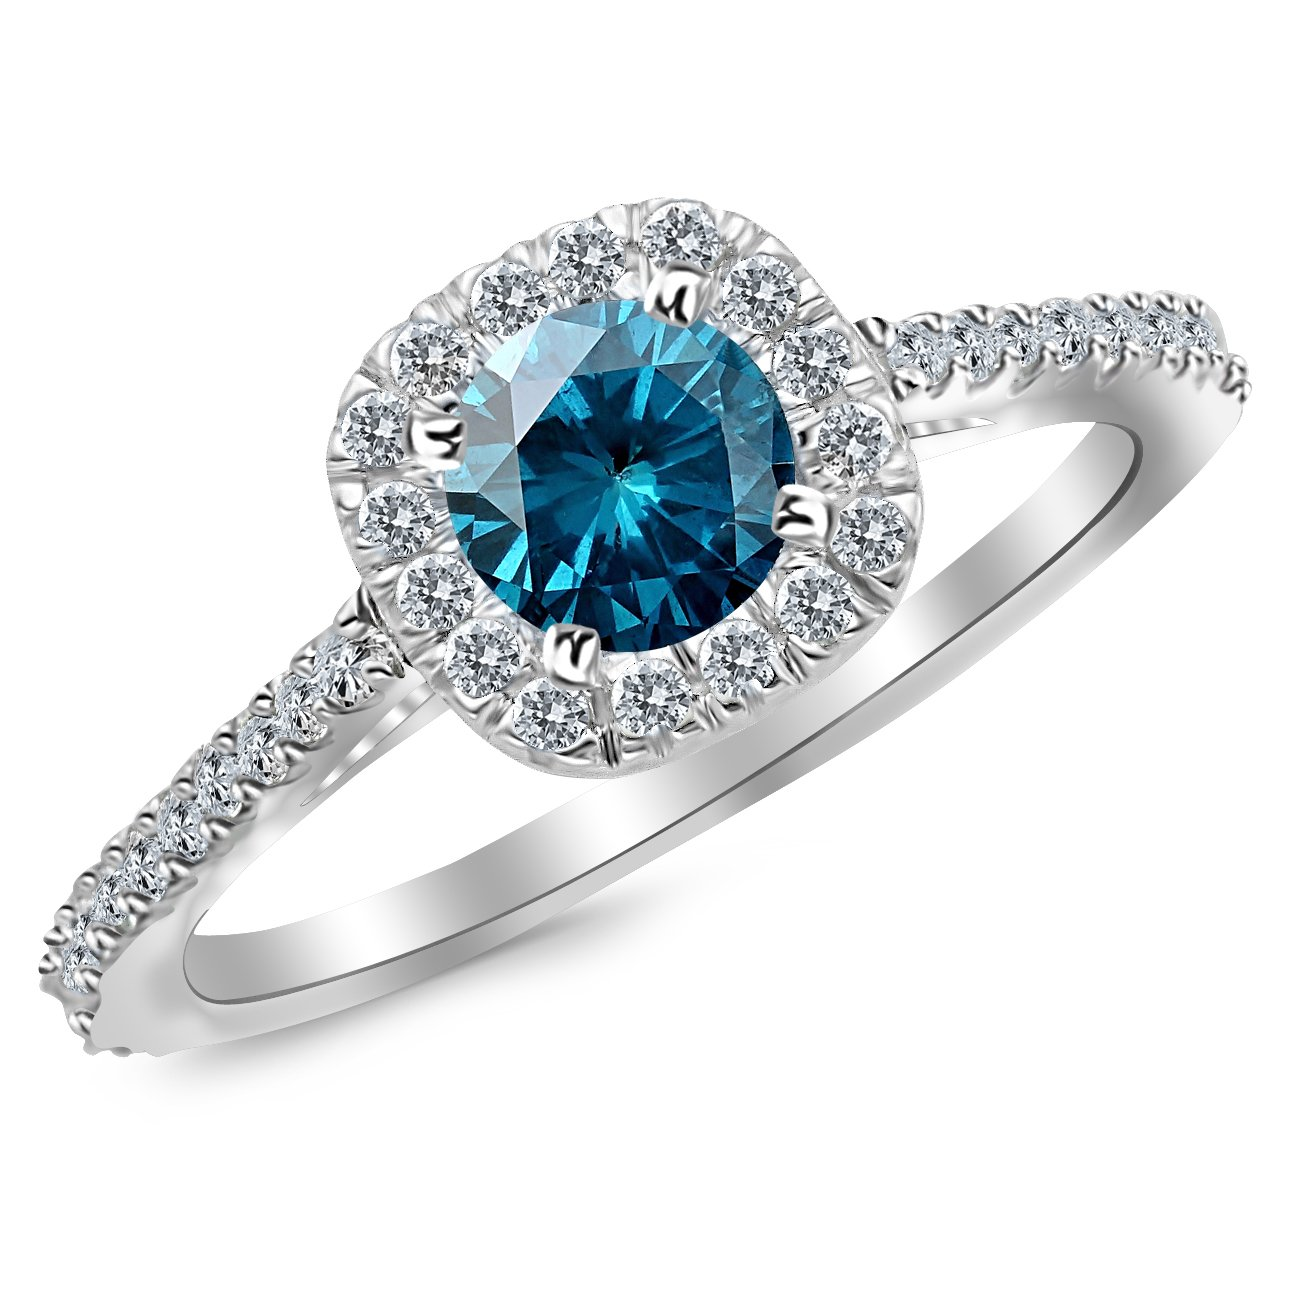 0.85 Carat 14K White Gold Gorgeous Classic Cushion Halo Style Diamond Engagement Ring with a 0.5 Carat Blue Diamond Center (Heirloom Quality) by Houston Diamond District